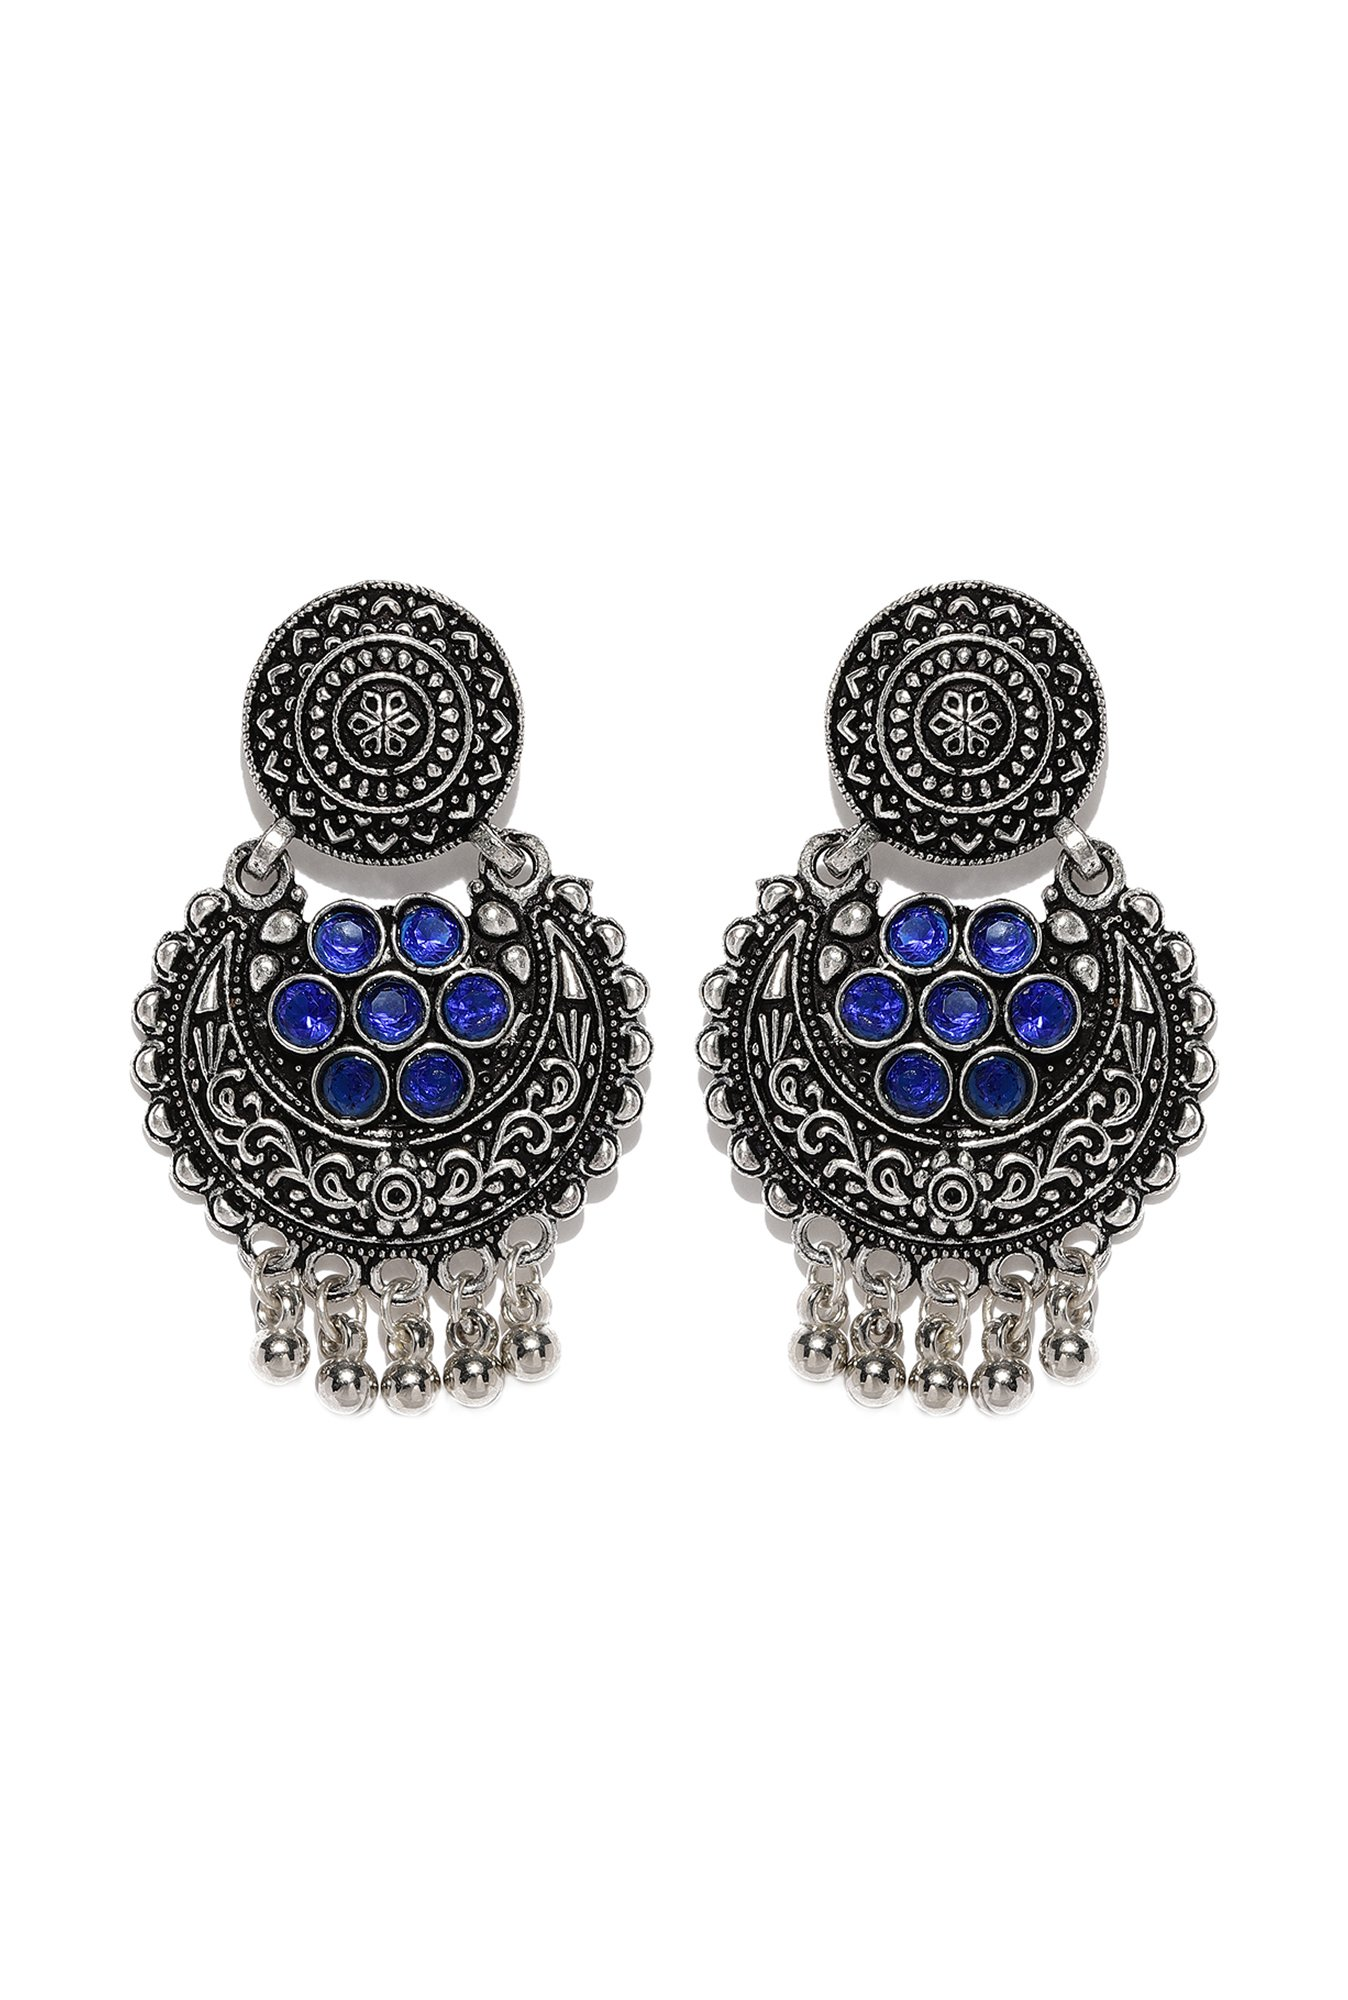 abbda7f98 Buy Ayesha Blue & Silver Chand Bali Earrings Online At Best Price ...